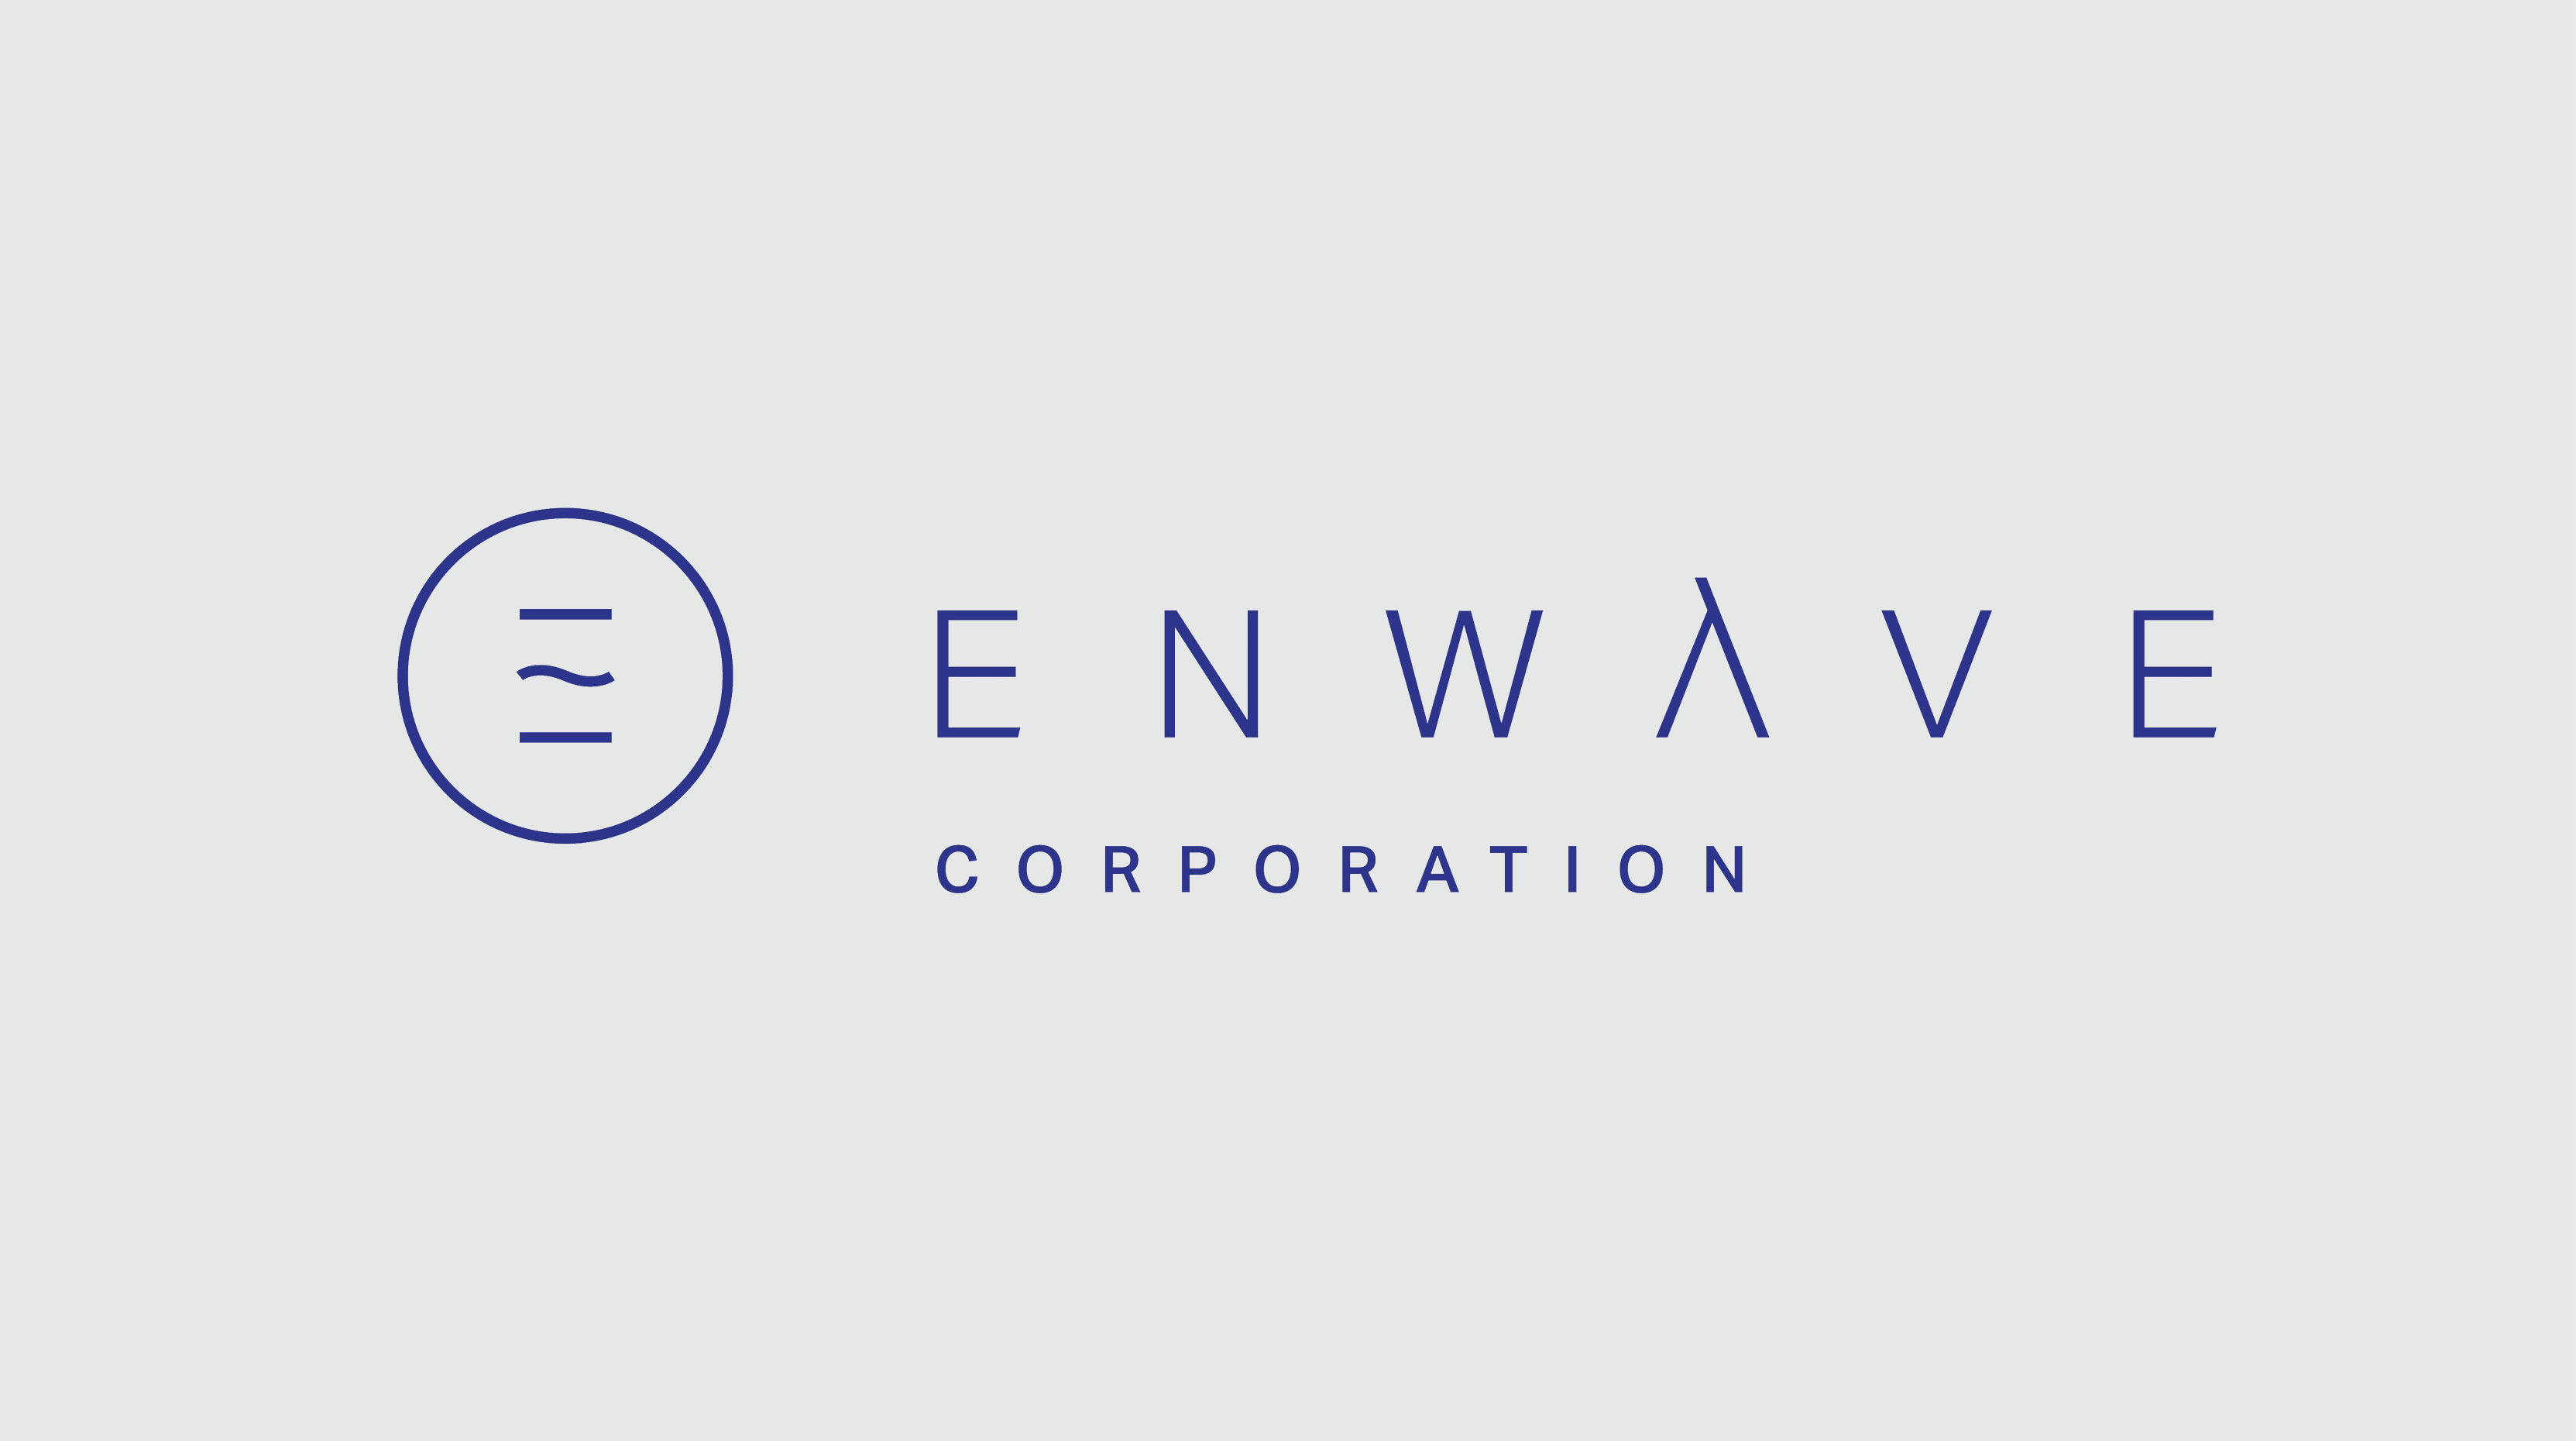 EnWave Provides Corporate Update and Announces Equity Incentive Grants